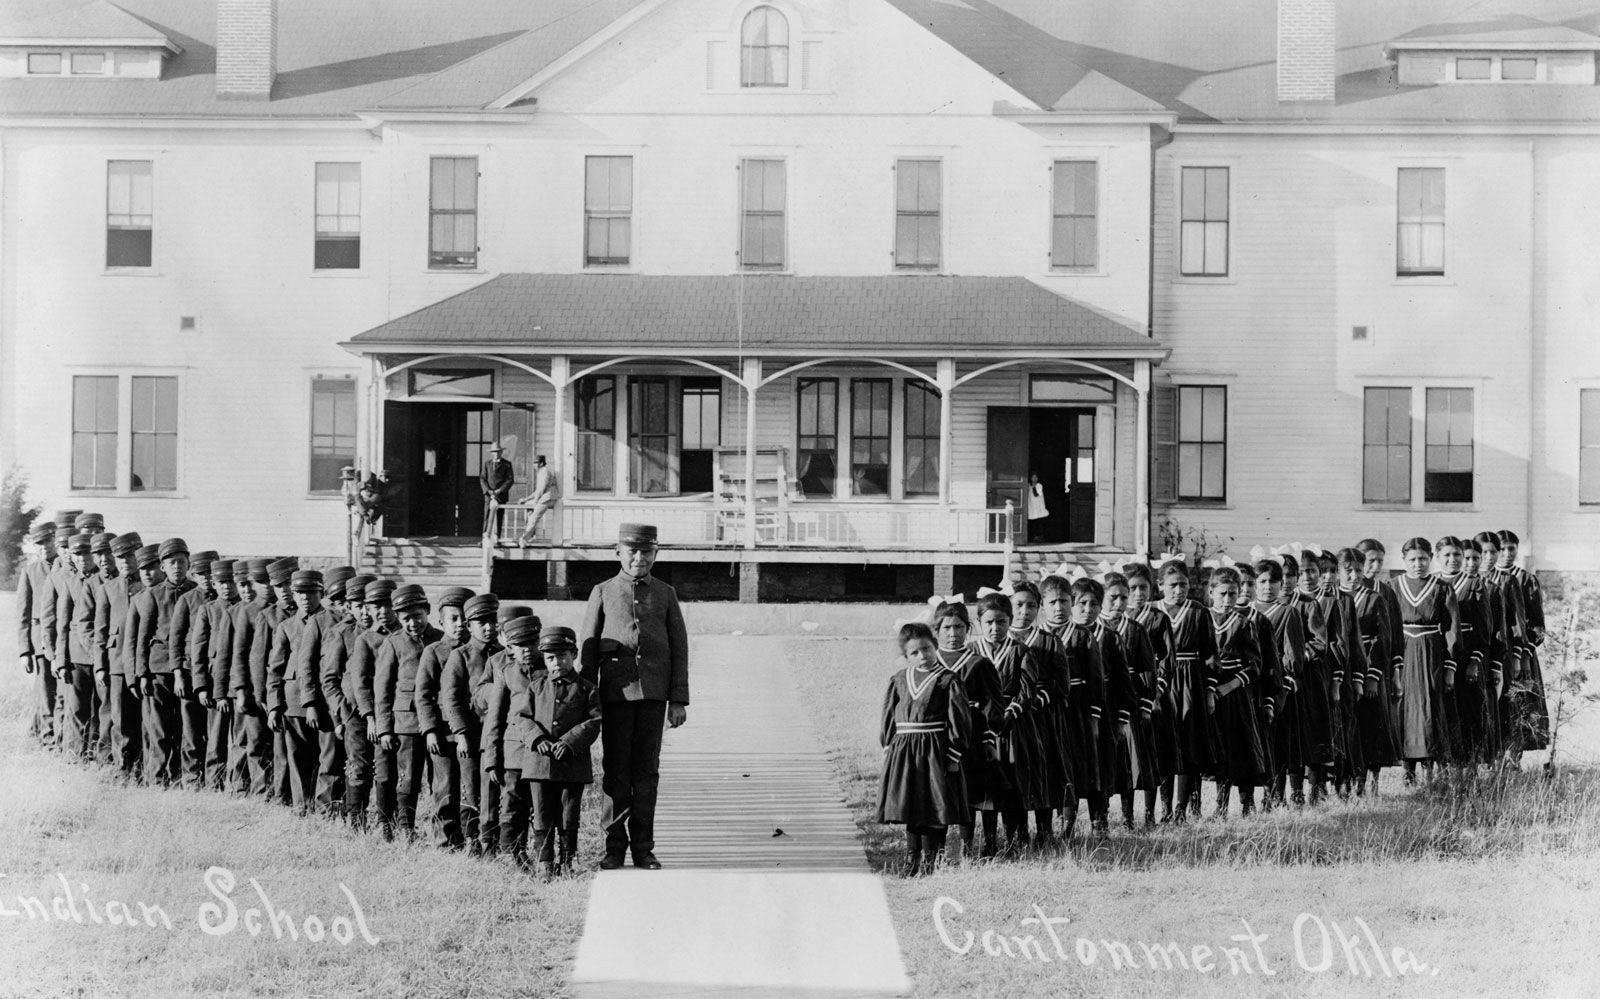 A Mennonite boarding school similar to the one near George's family's settlement. Her great grandmother Mary is not in this photo, but other family members are.